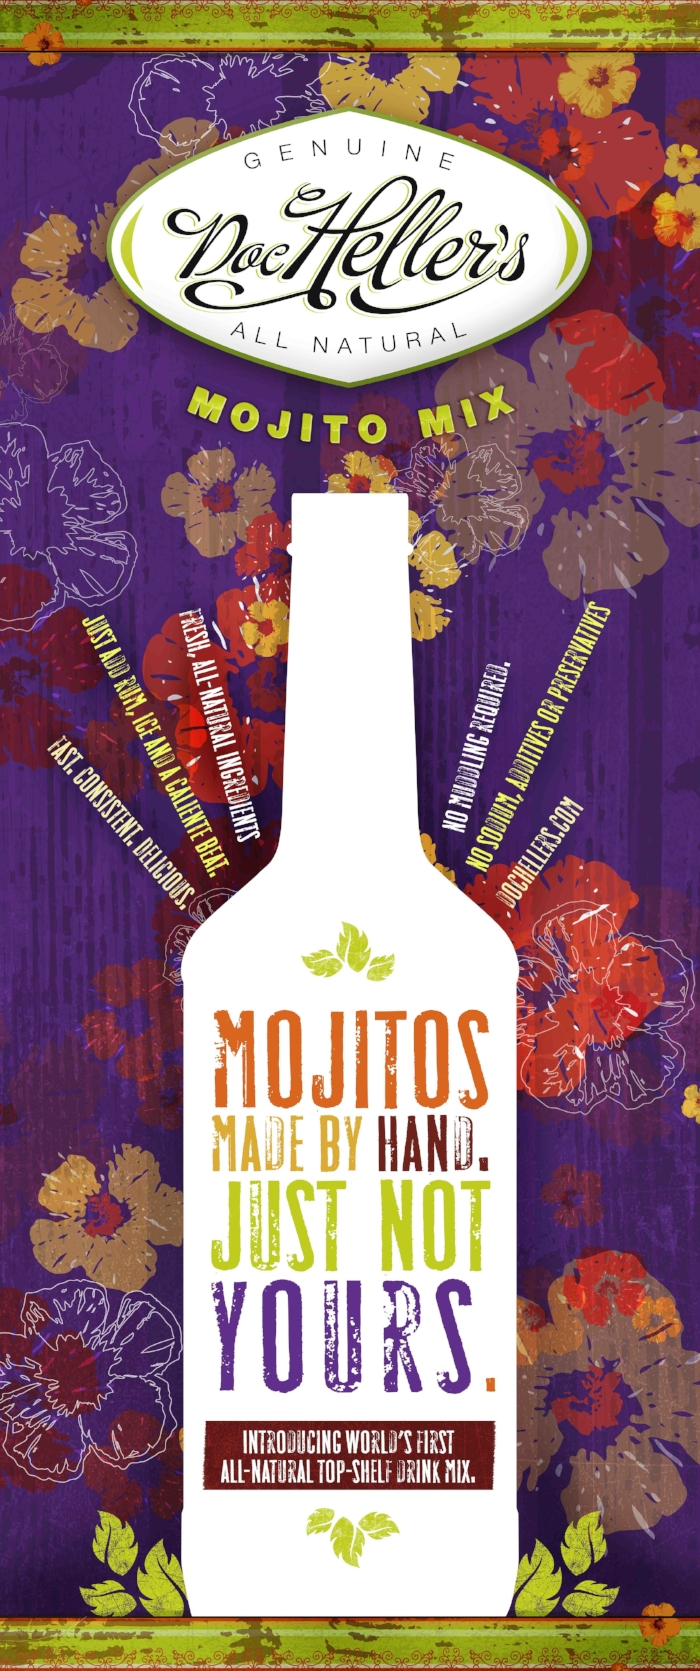 Doc Heller's Mojito Mix | branding, packaging, print, digital, web, collateral, trade show